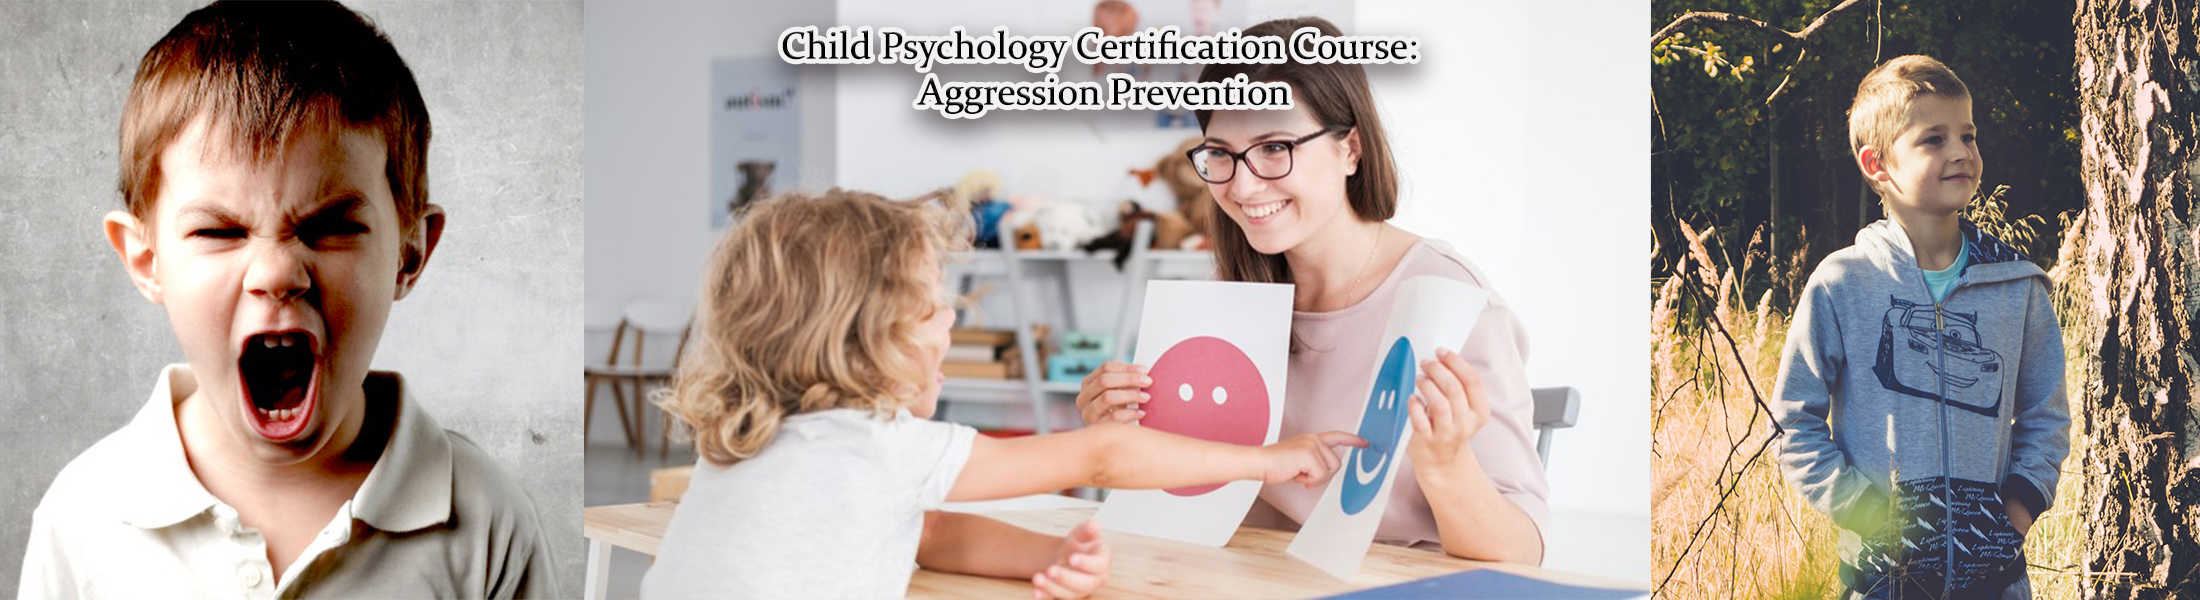 Aggression Prevention Child Psychology Psychology Online Courses